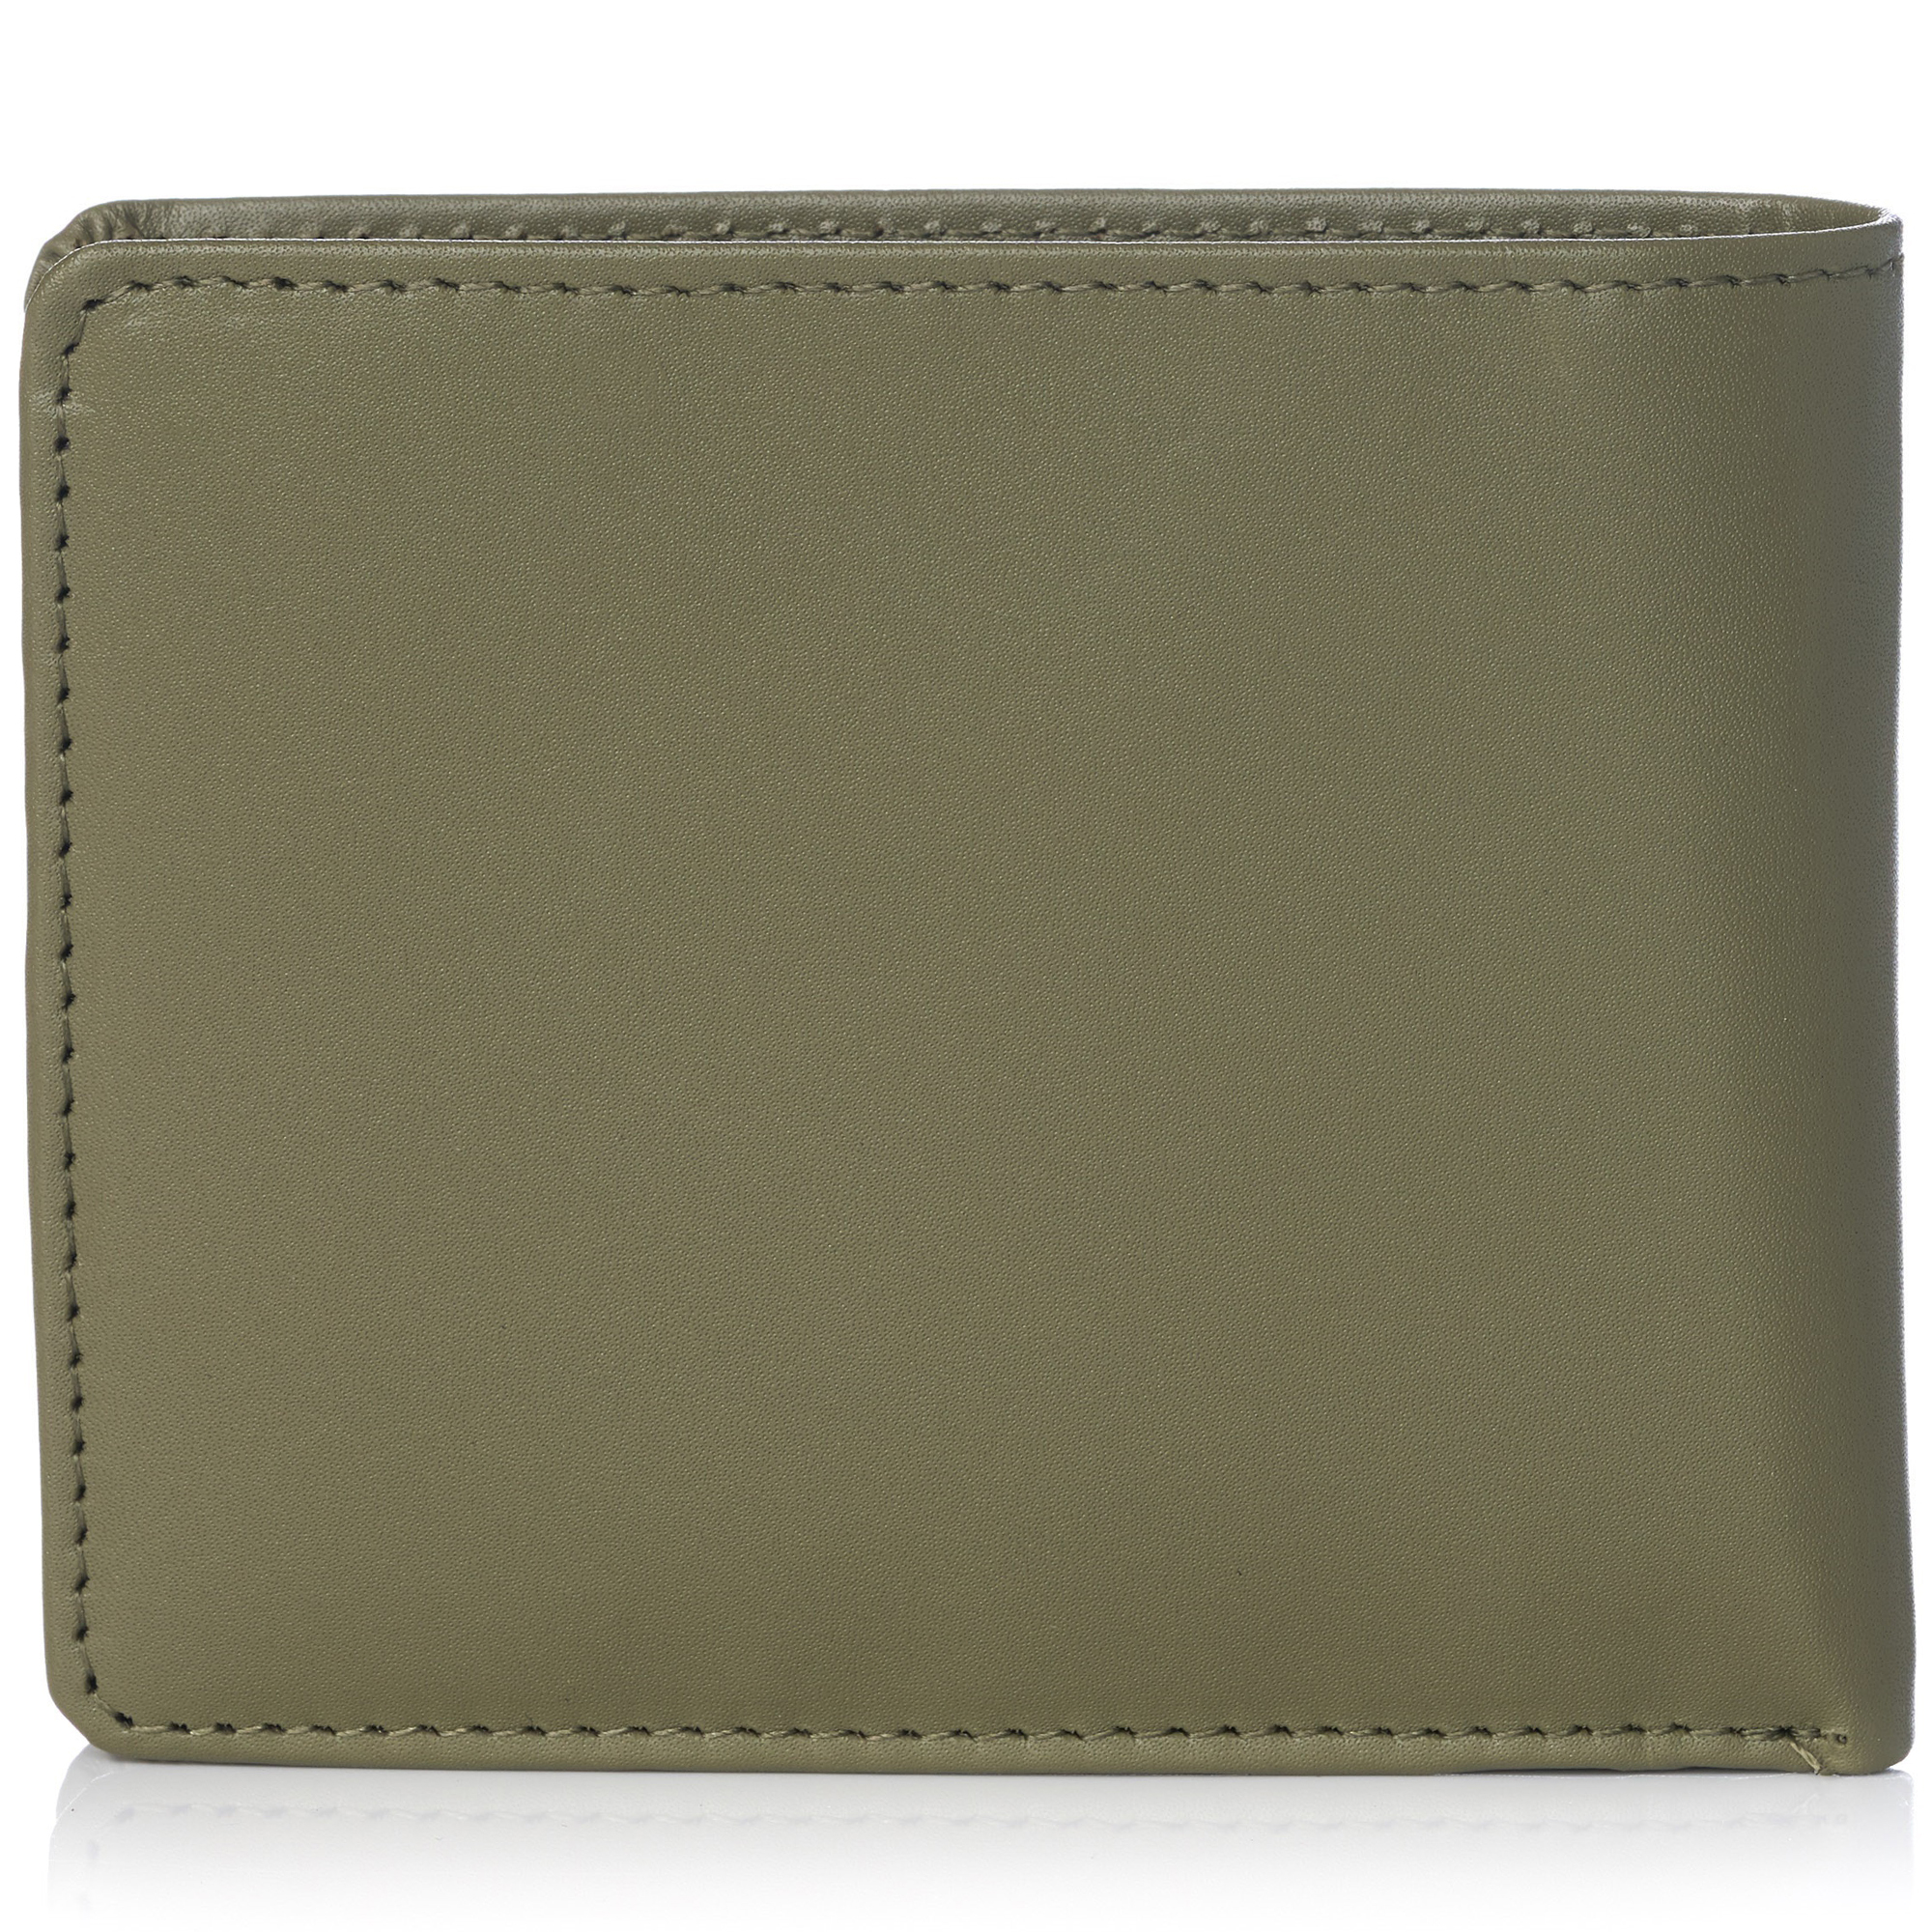 miniature 85 - Alpine-Swiss-RFID-Mens-Wallet-Deluxe-Capacity-Passcase-Bifold-Two-Bill-Sections